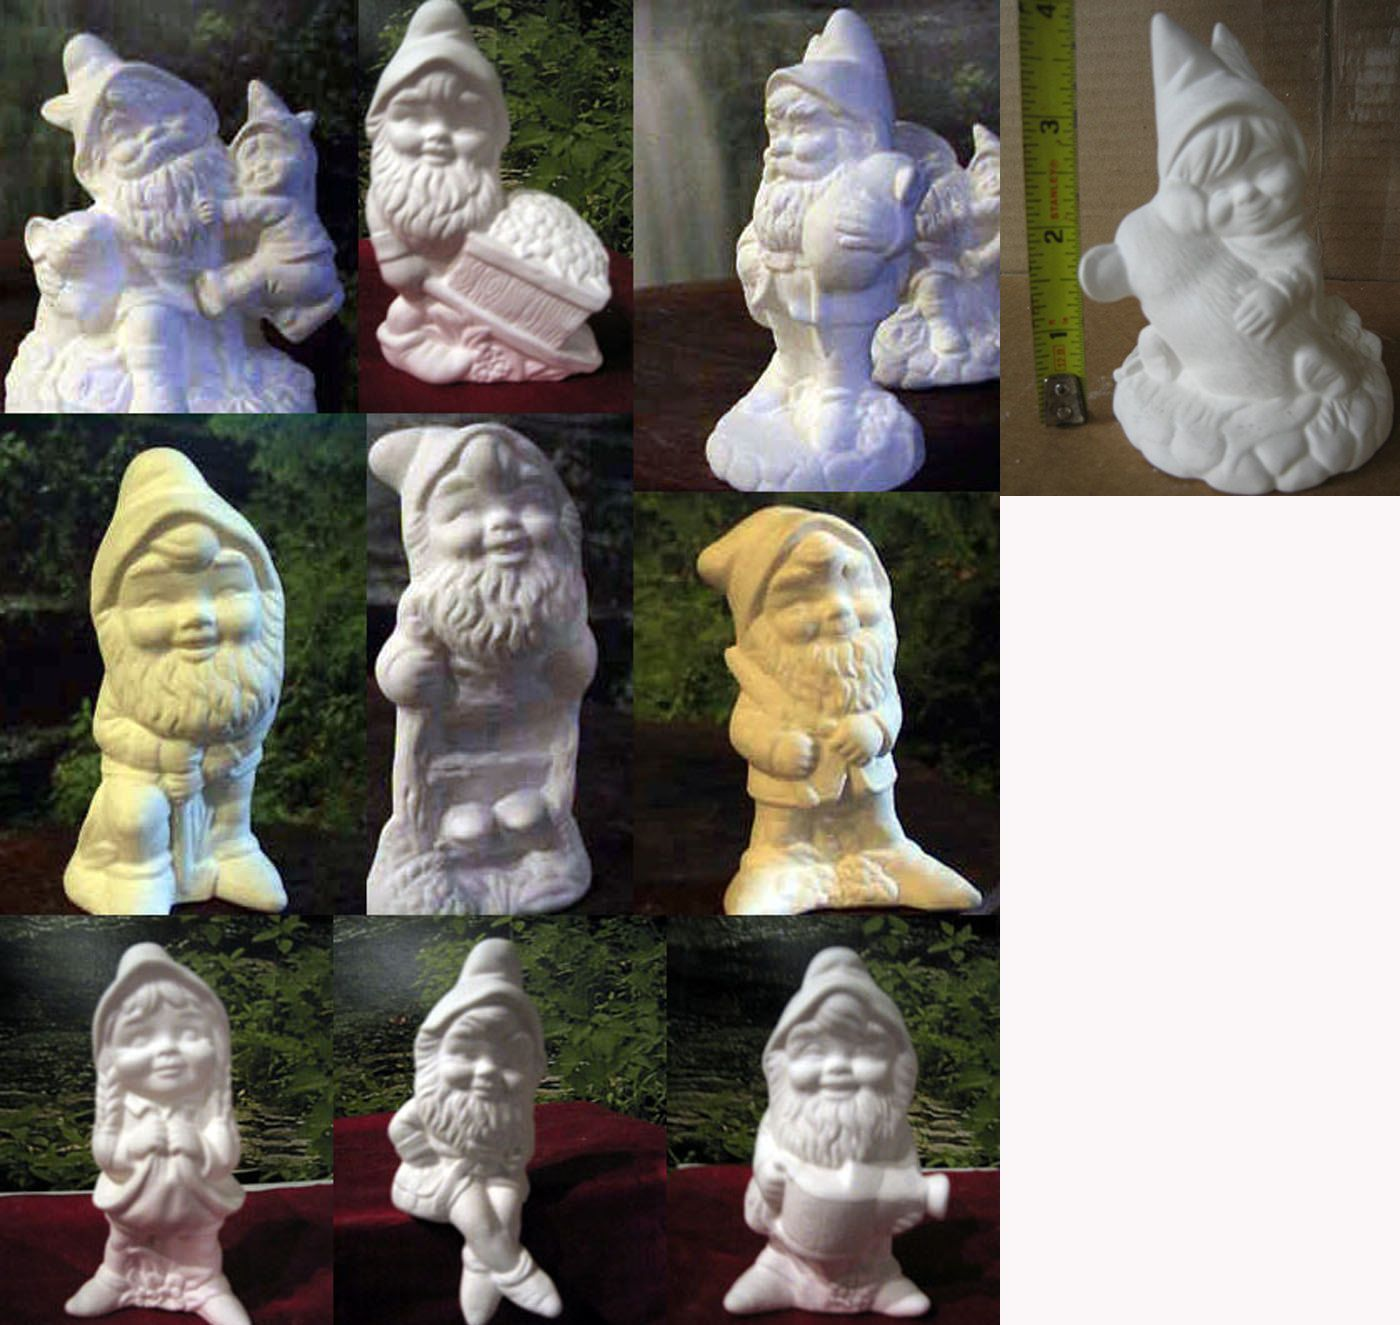 Ceramic Gnomes To Paint: Choice One, Alberta, Garden Gnome, Yard, Garden Statue